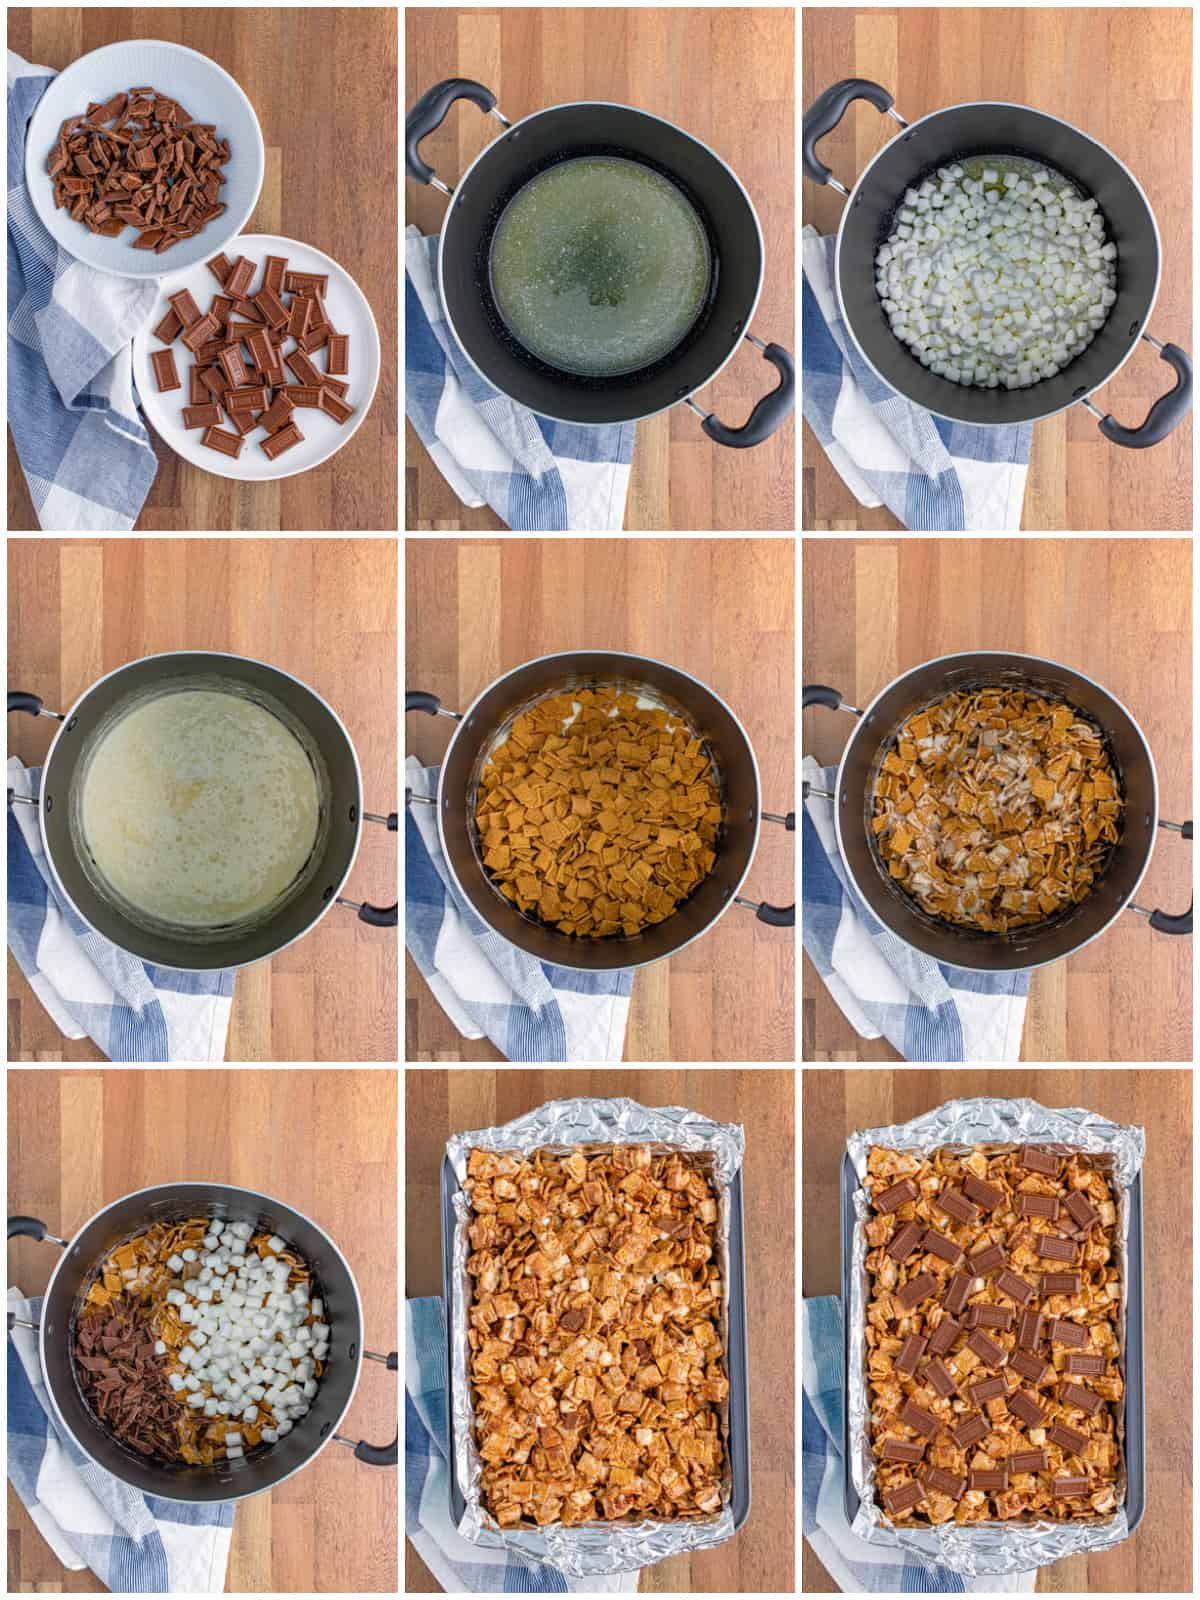 Step by step photos on how to make S'mores Bars